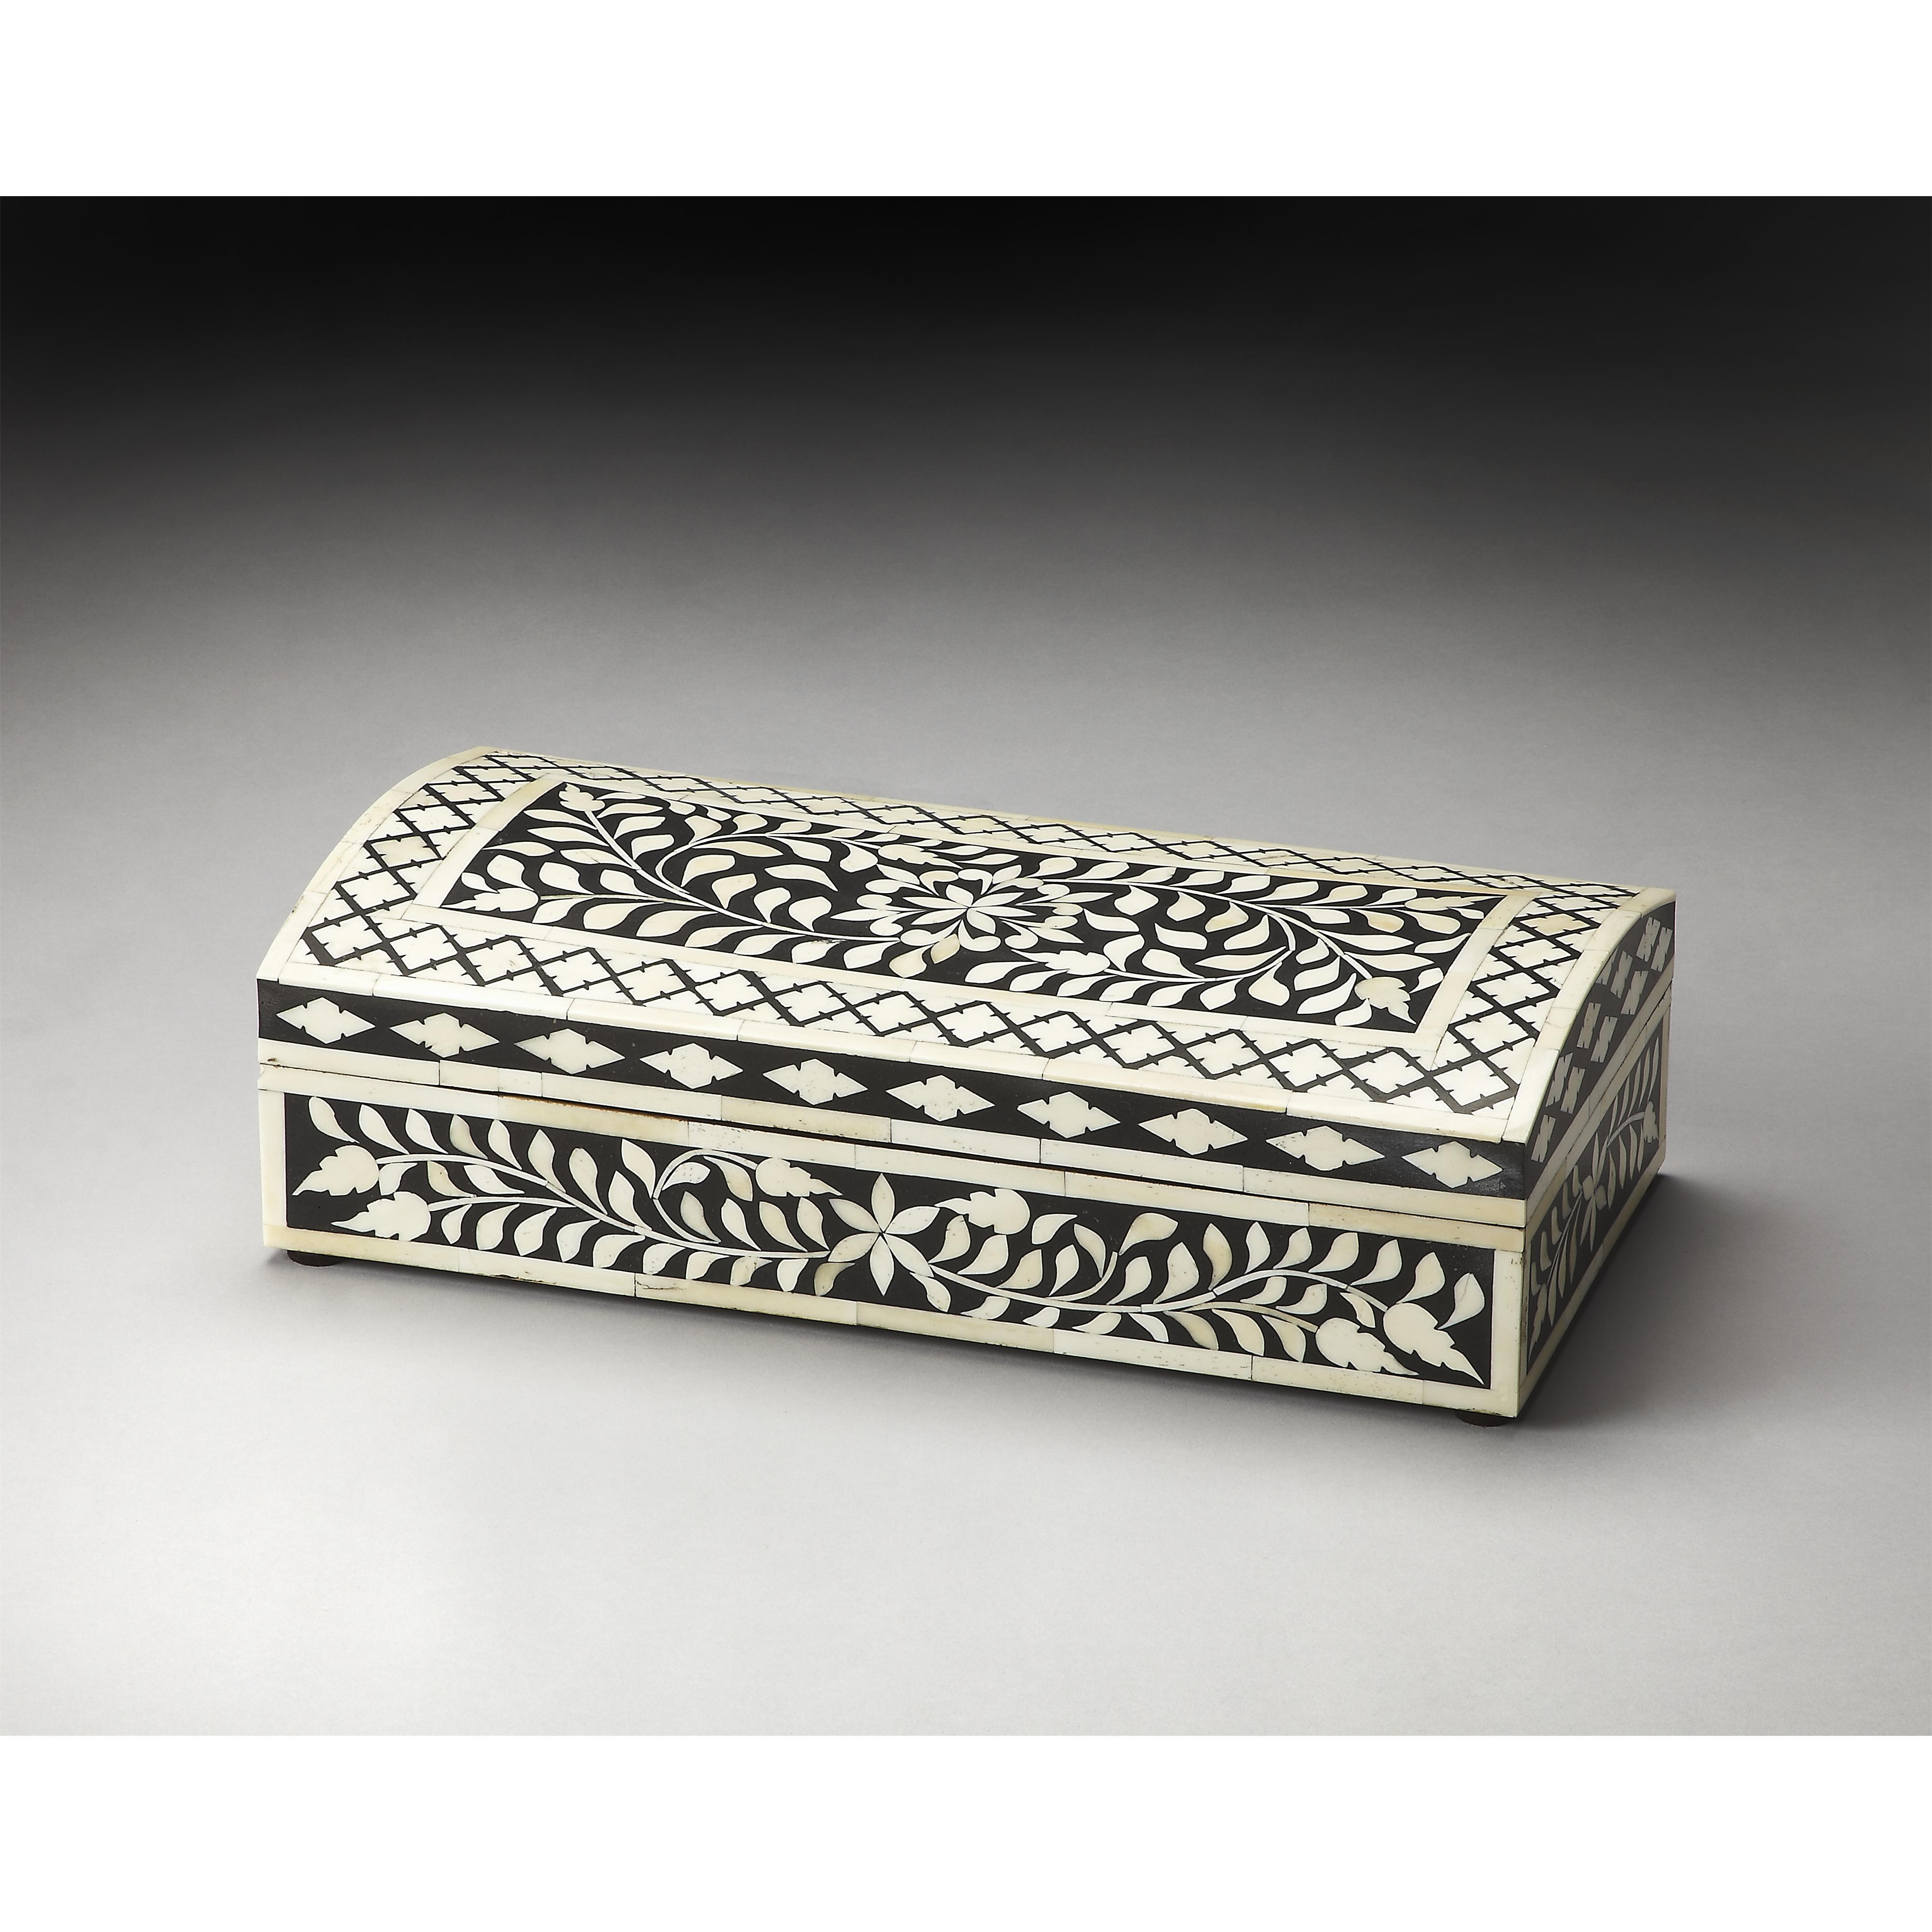 Butler Specialty Company Hors D'oeuvres Storage Box - Item Number: 3233016